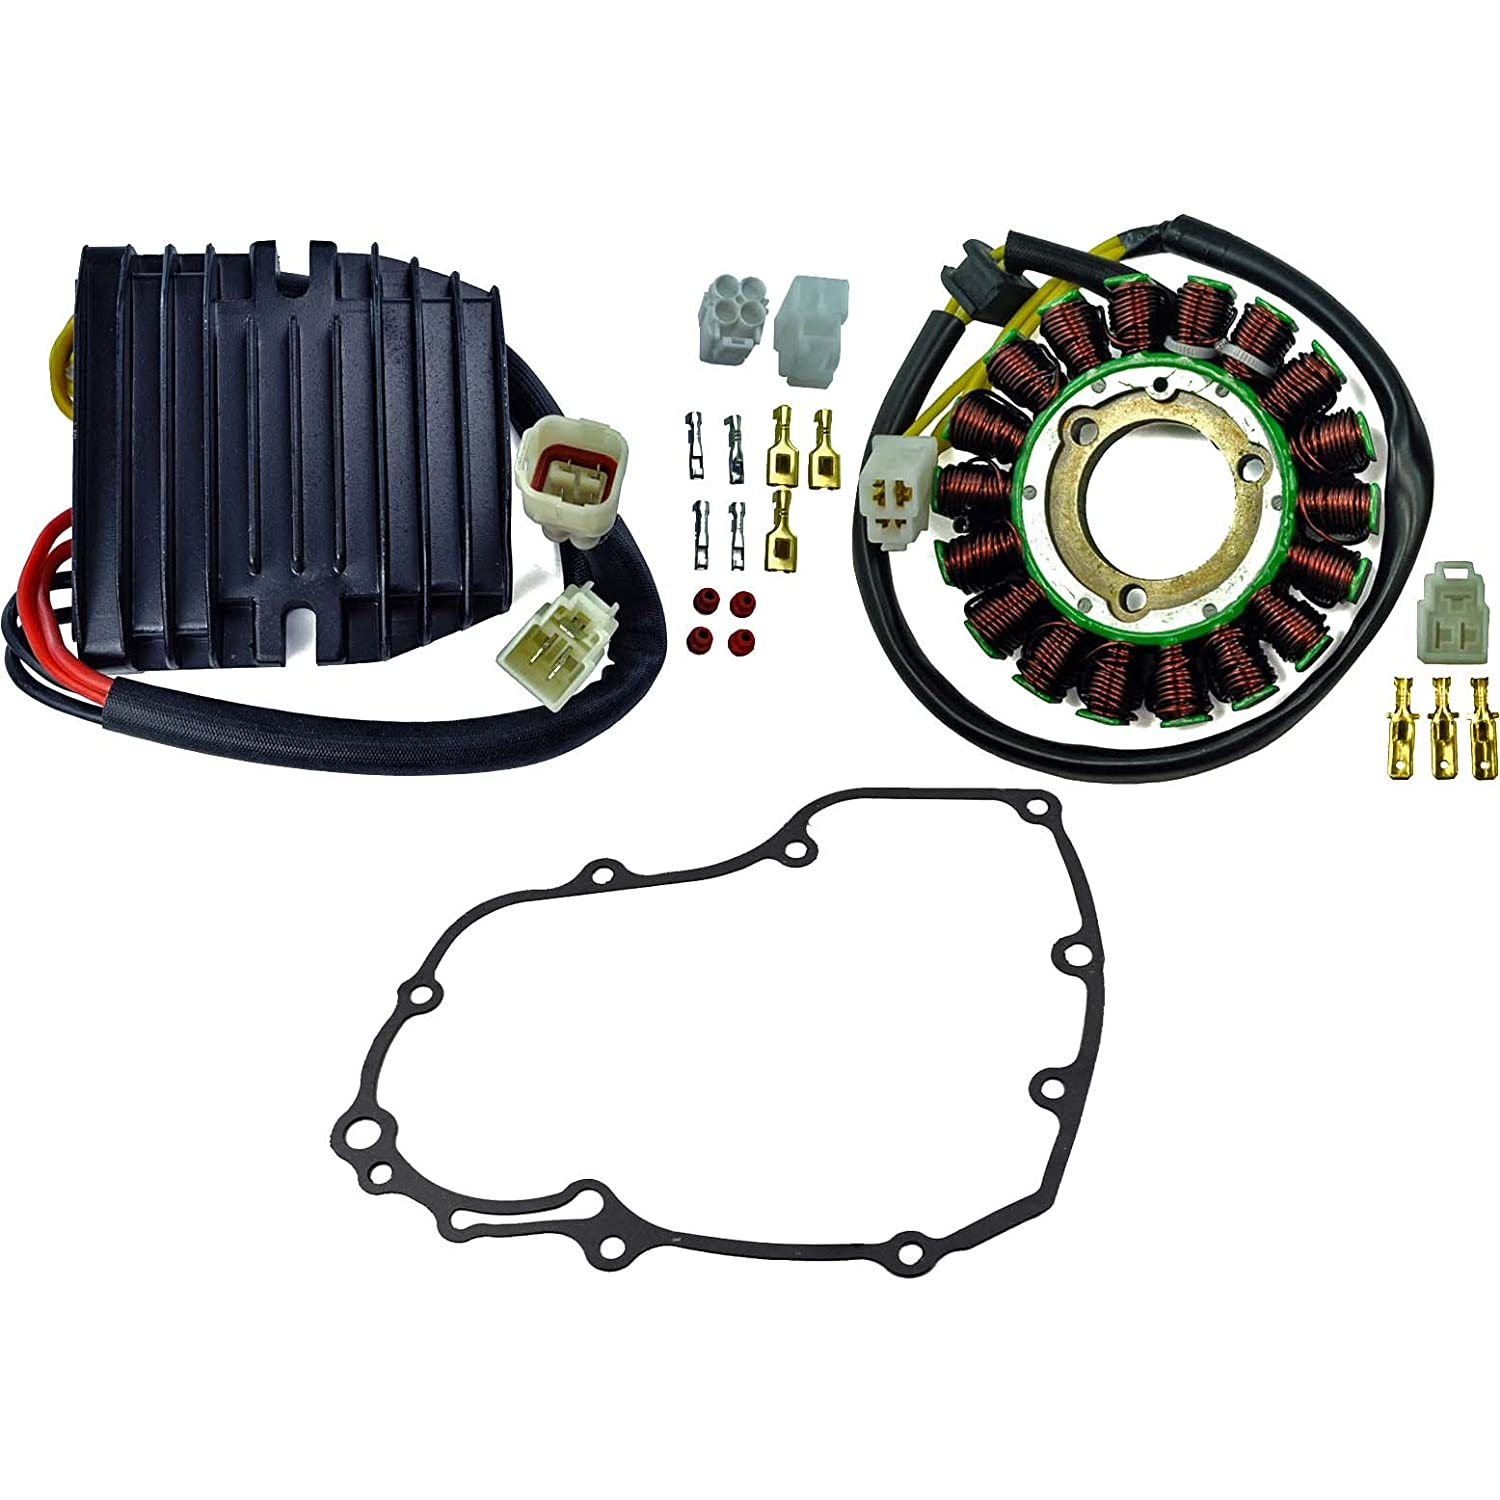 kit improved heavy duty stator mosfet voltage regulator rectifier gasket for suzuki gsx r 600 gsxr 750 2006 2017  06 gsxr rectifier regulator wiring diagram #5